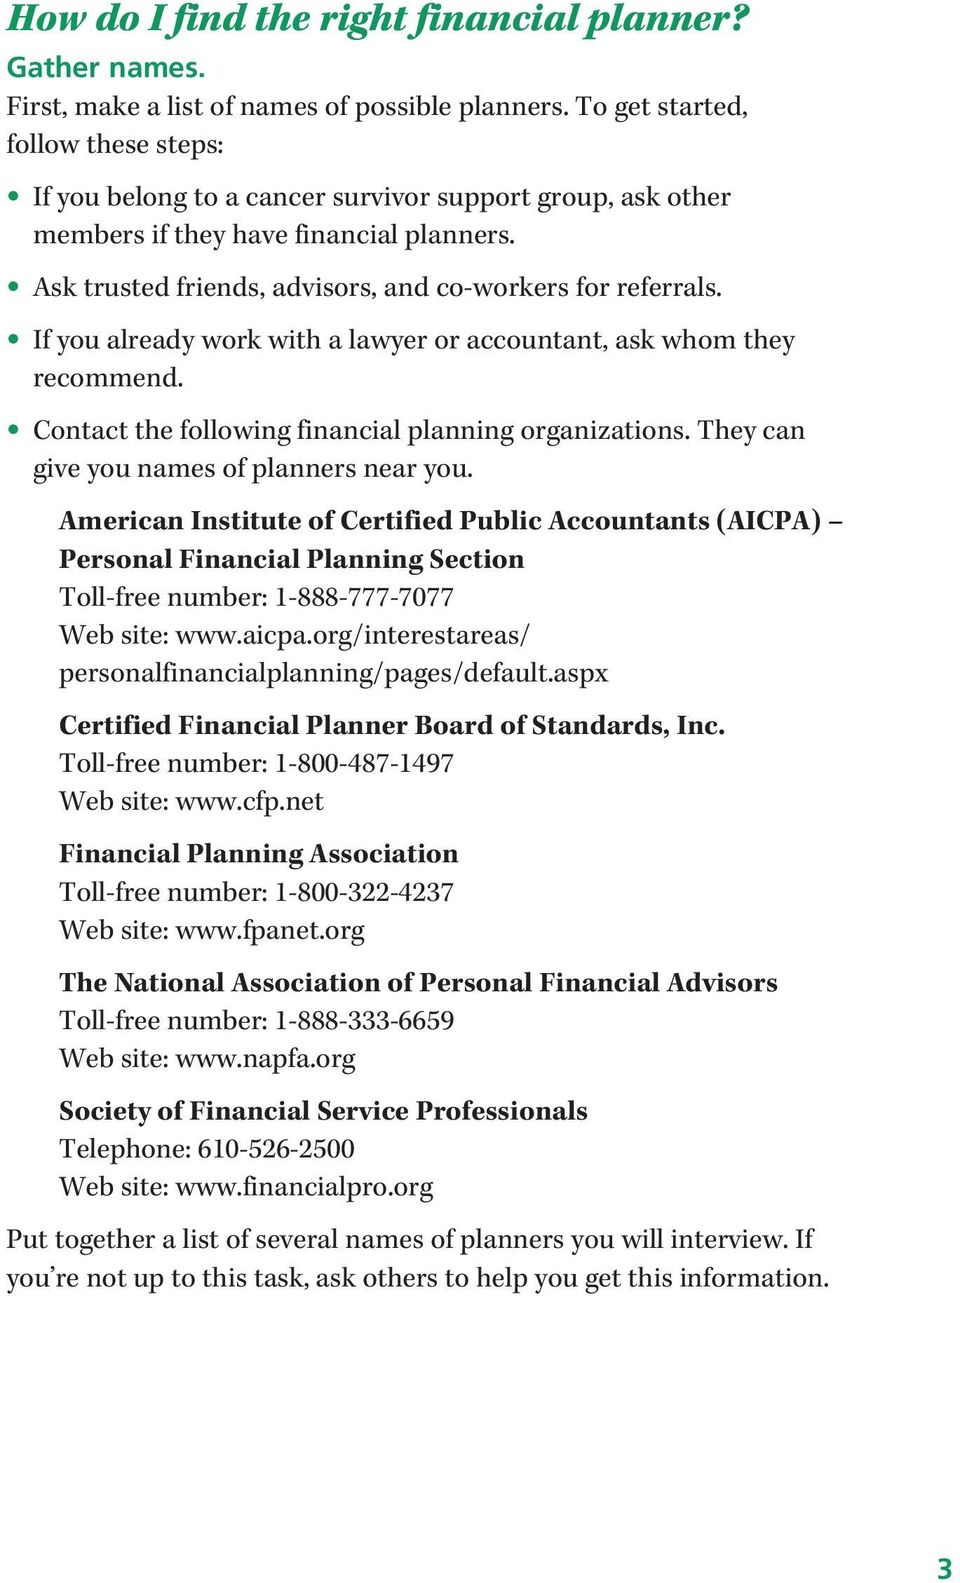 If you already work with a lawyer or accountant, ask whom they recommend. Contact the following financial planning organizations. They can give you names of planners near you.